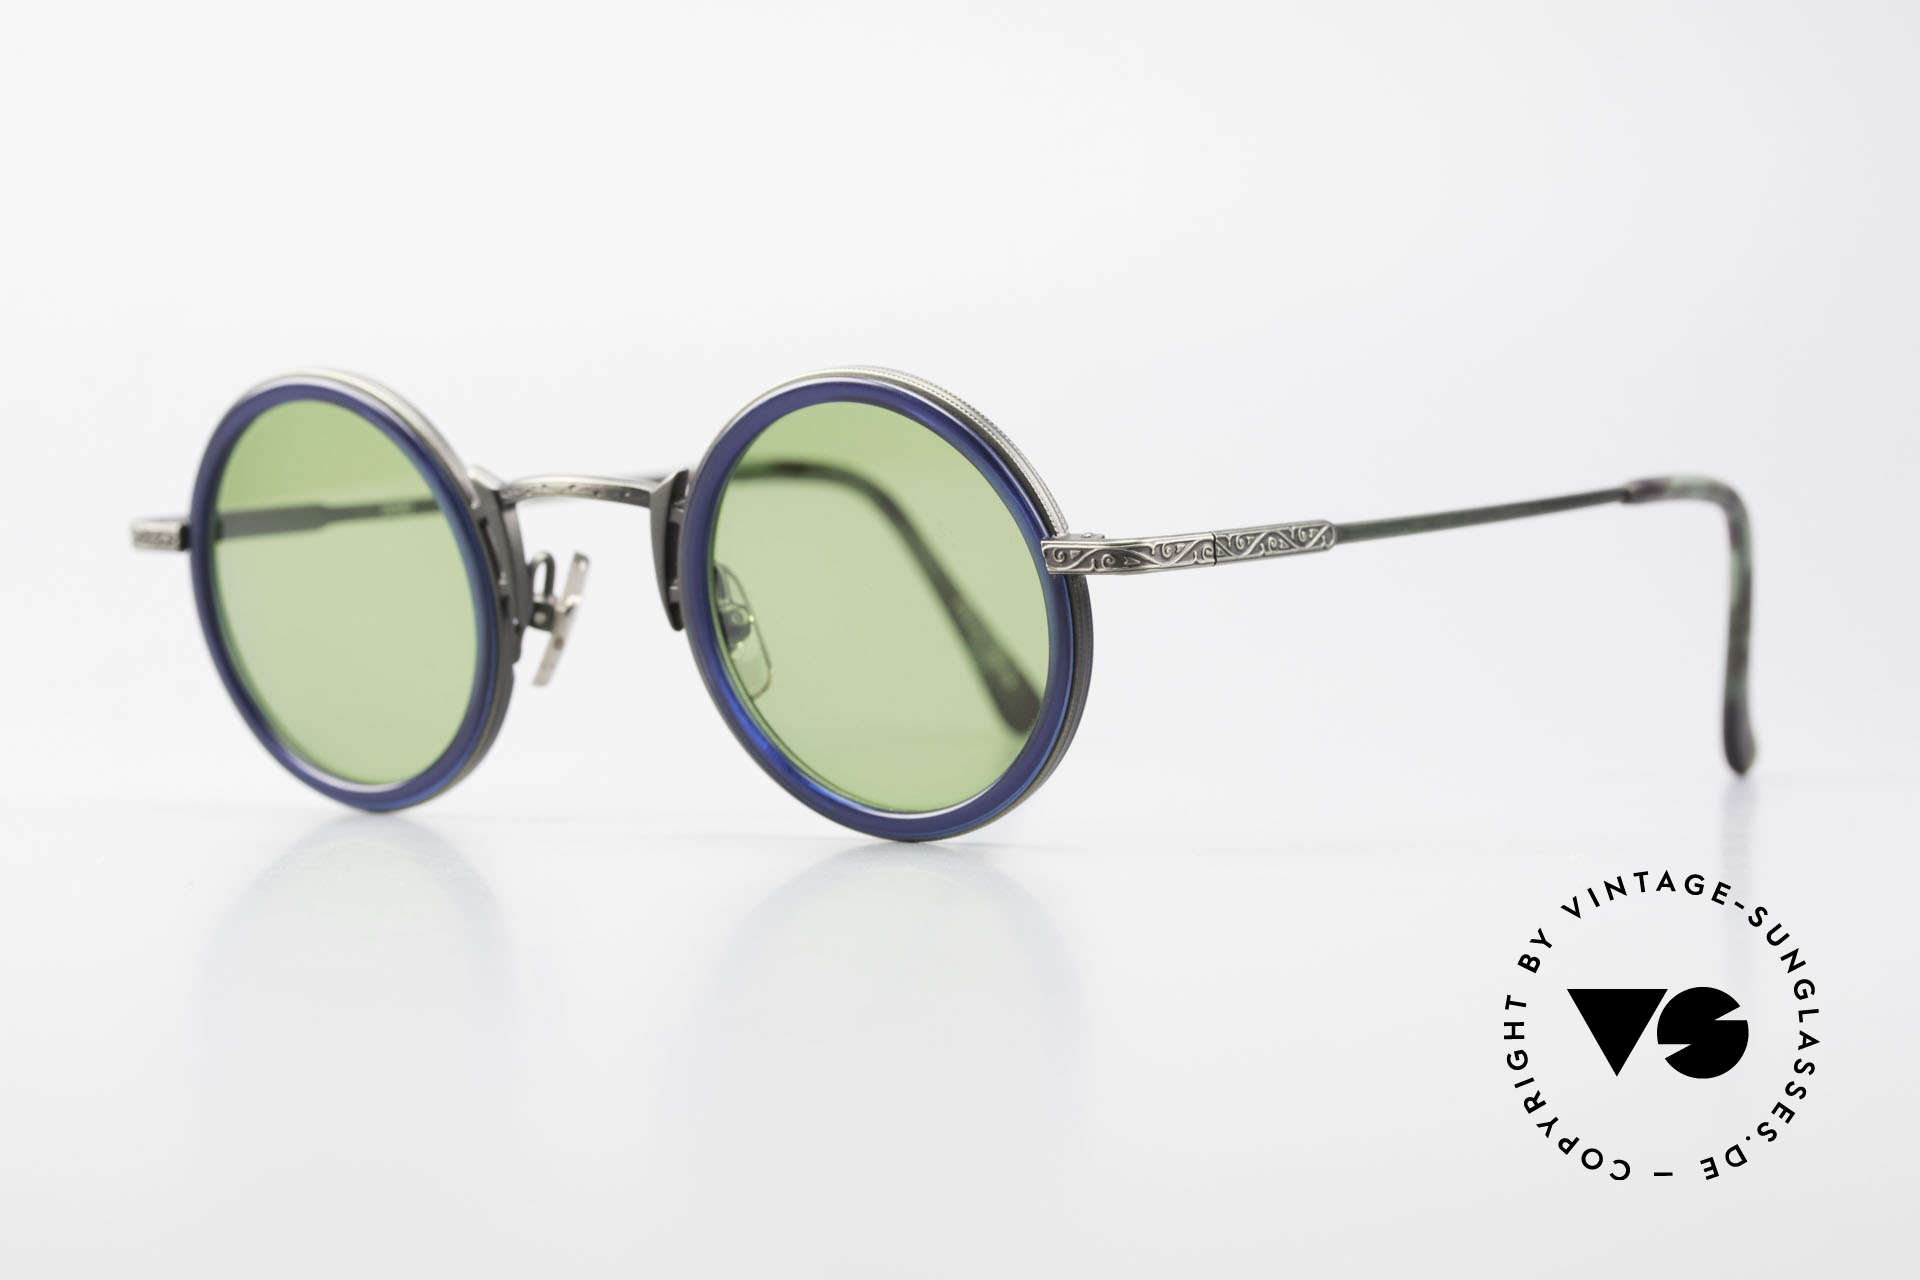 Freudenhaus Domo Round Designer Sunglasses, great combination of materials (plastic & titanium), Made for Men